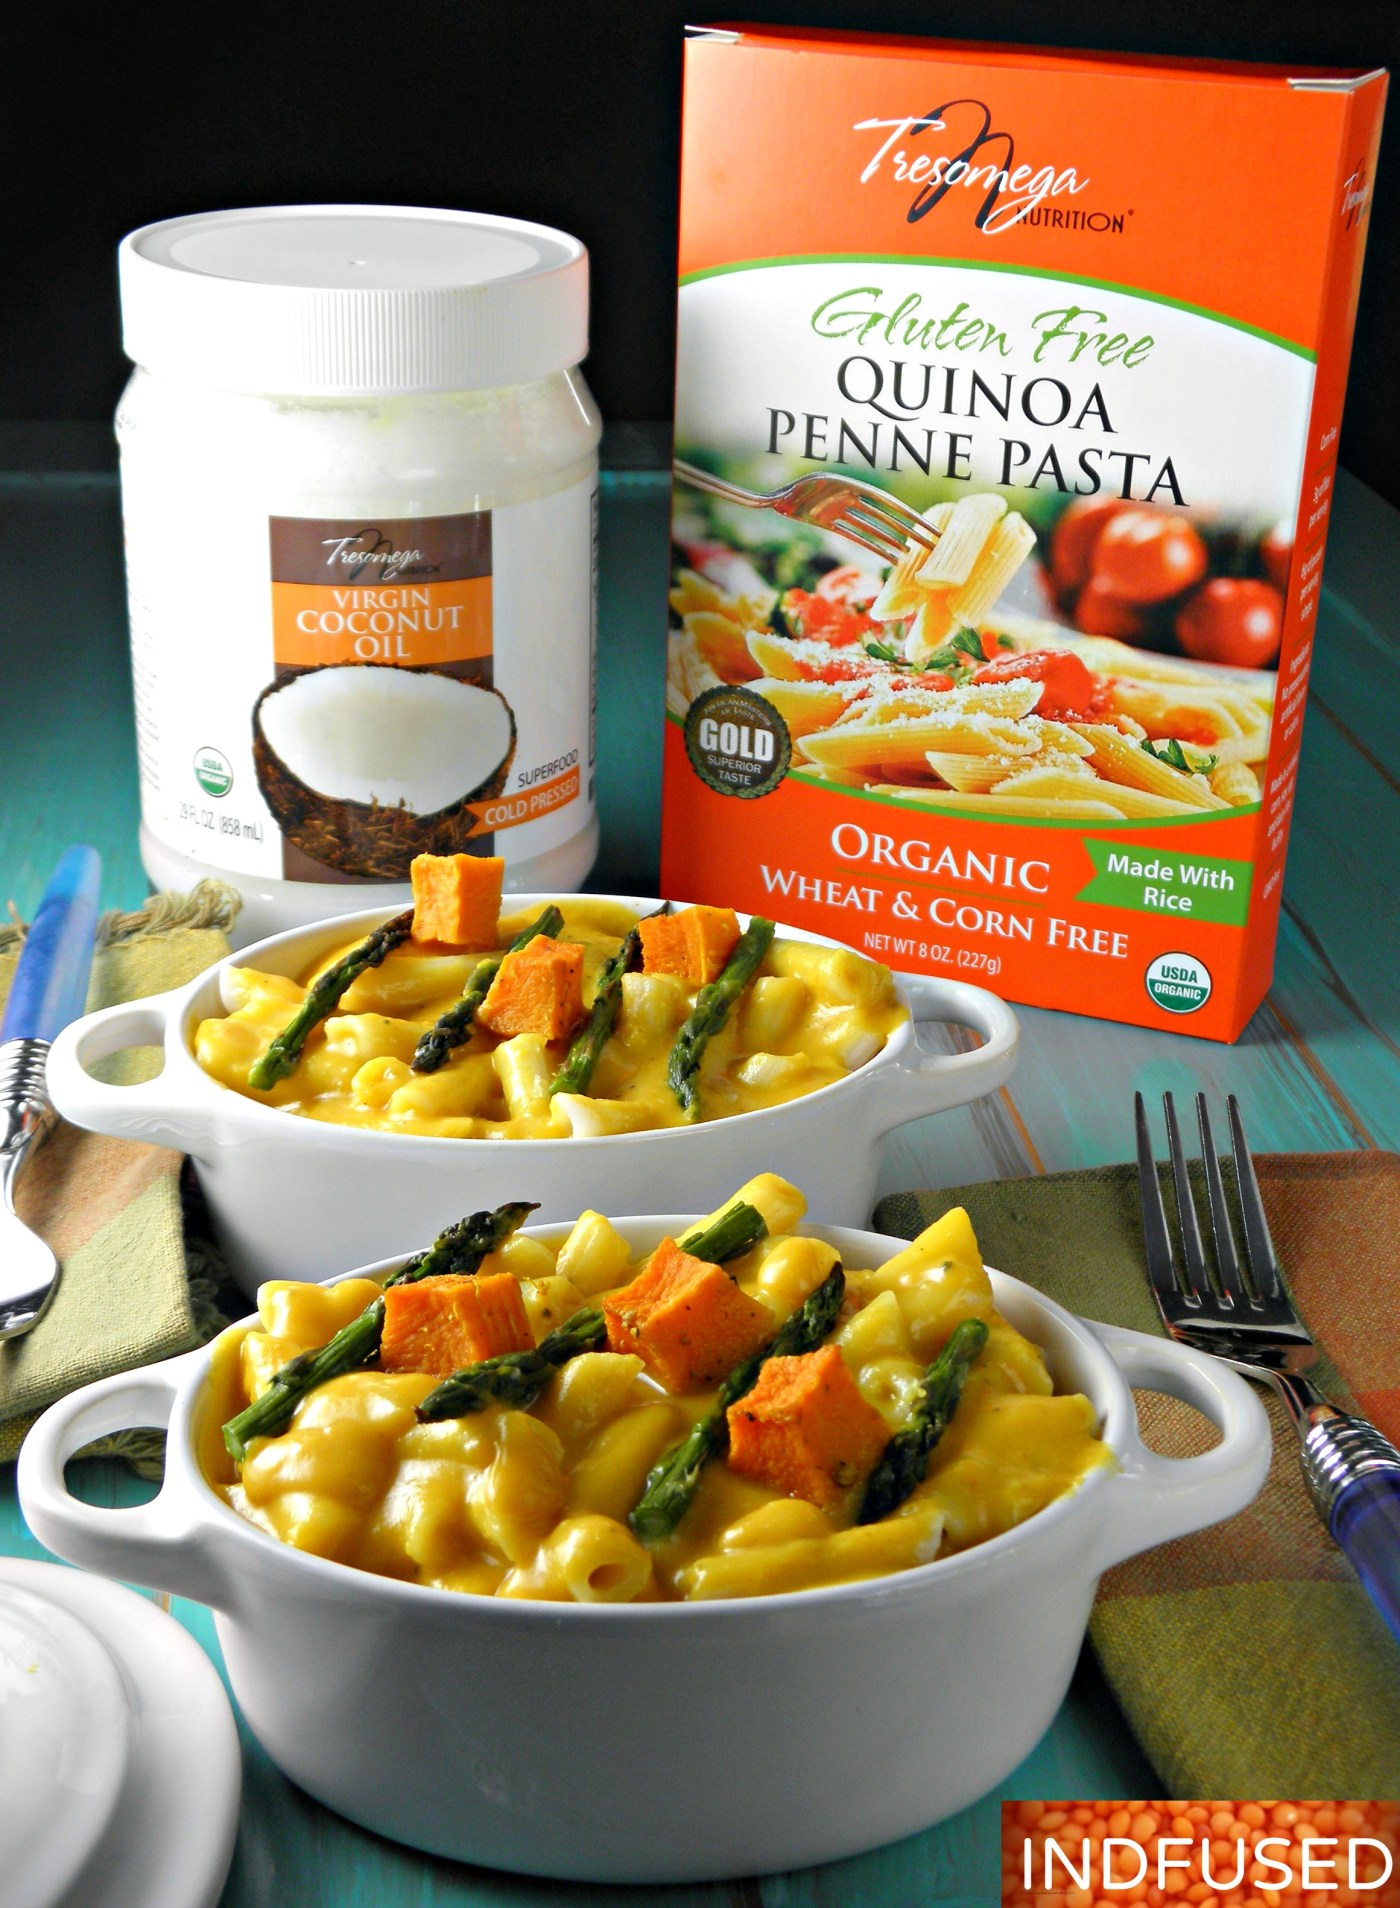 GF, vegan,healthy and delicious quinoa penne pasta with gourmet butternut squash sauce